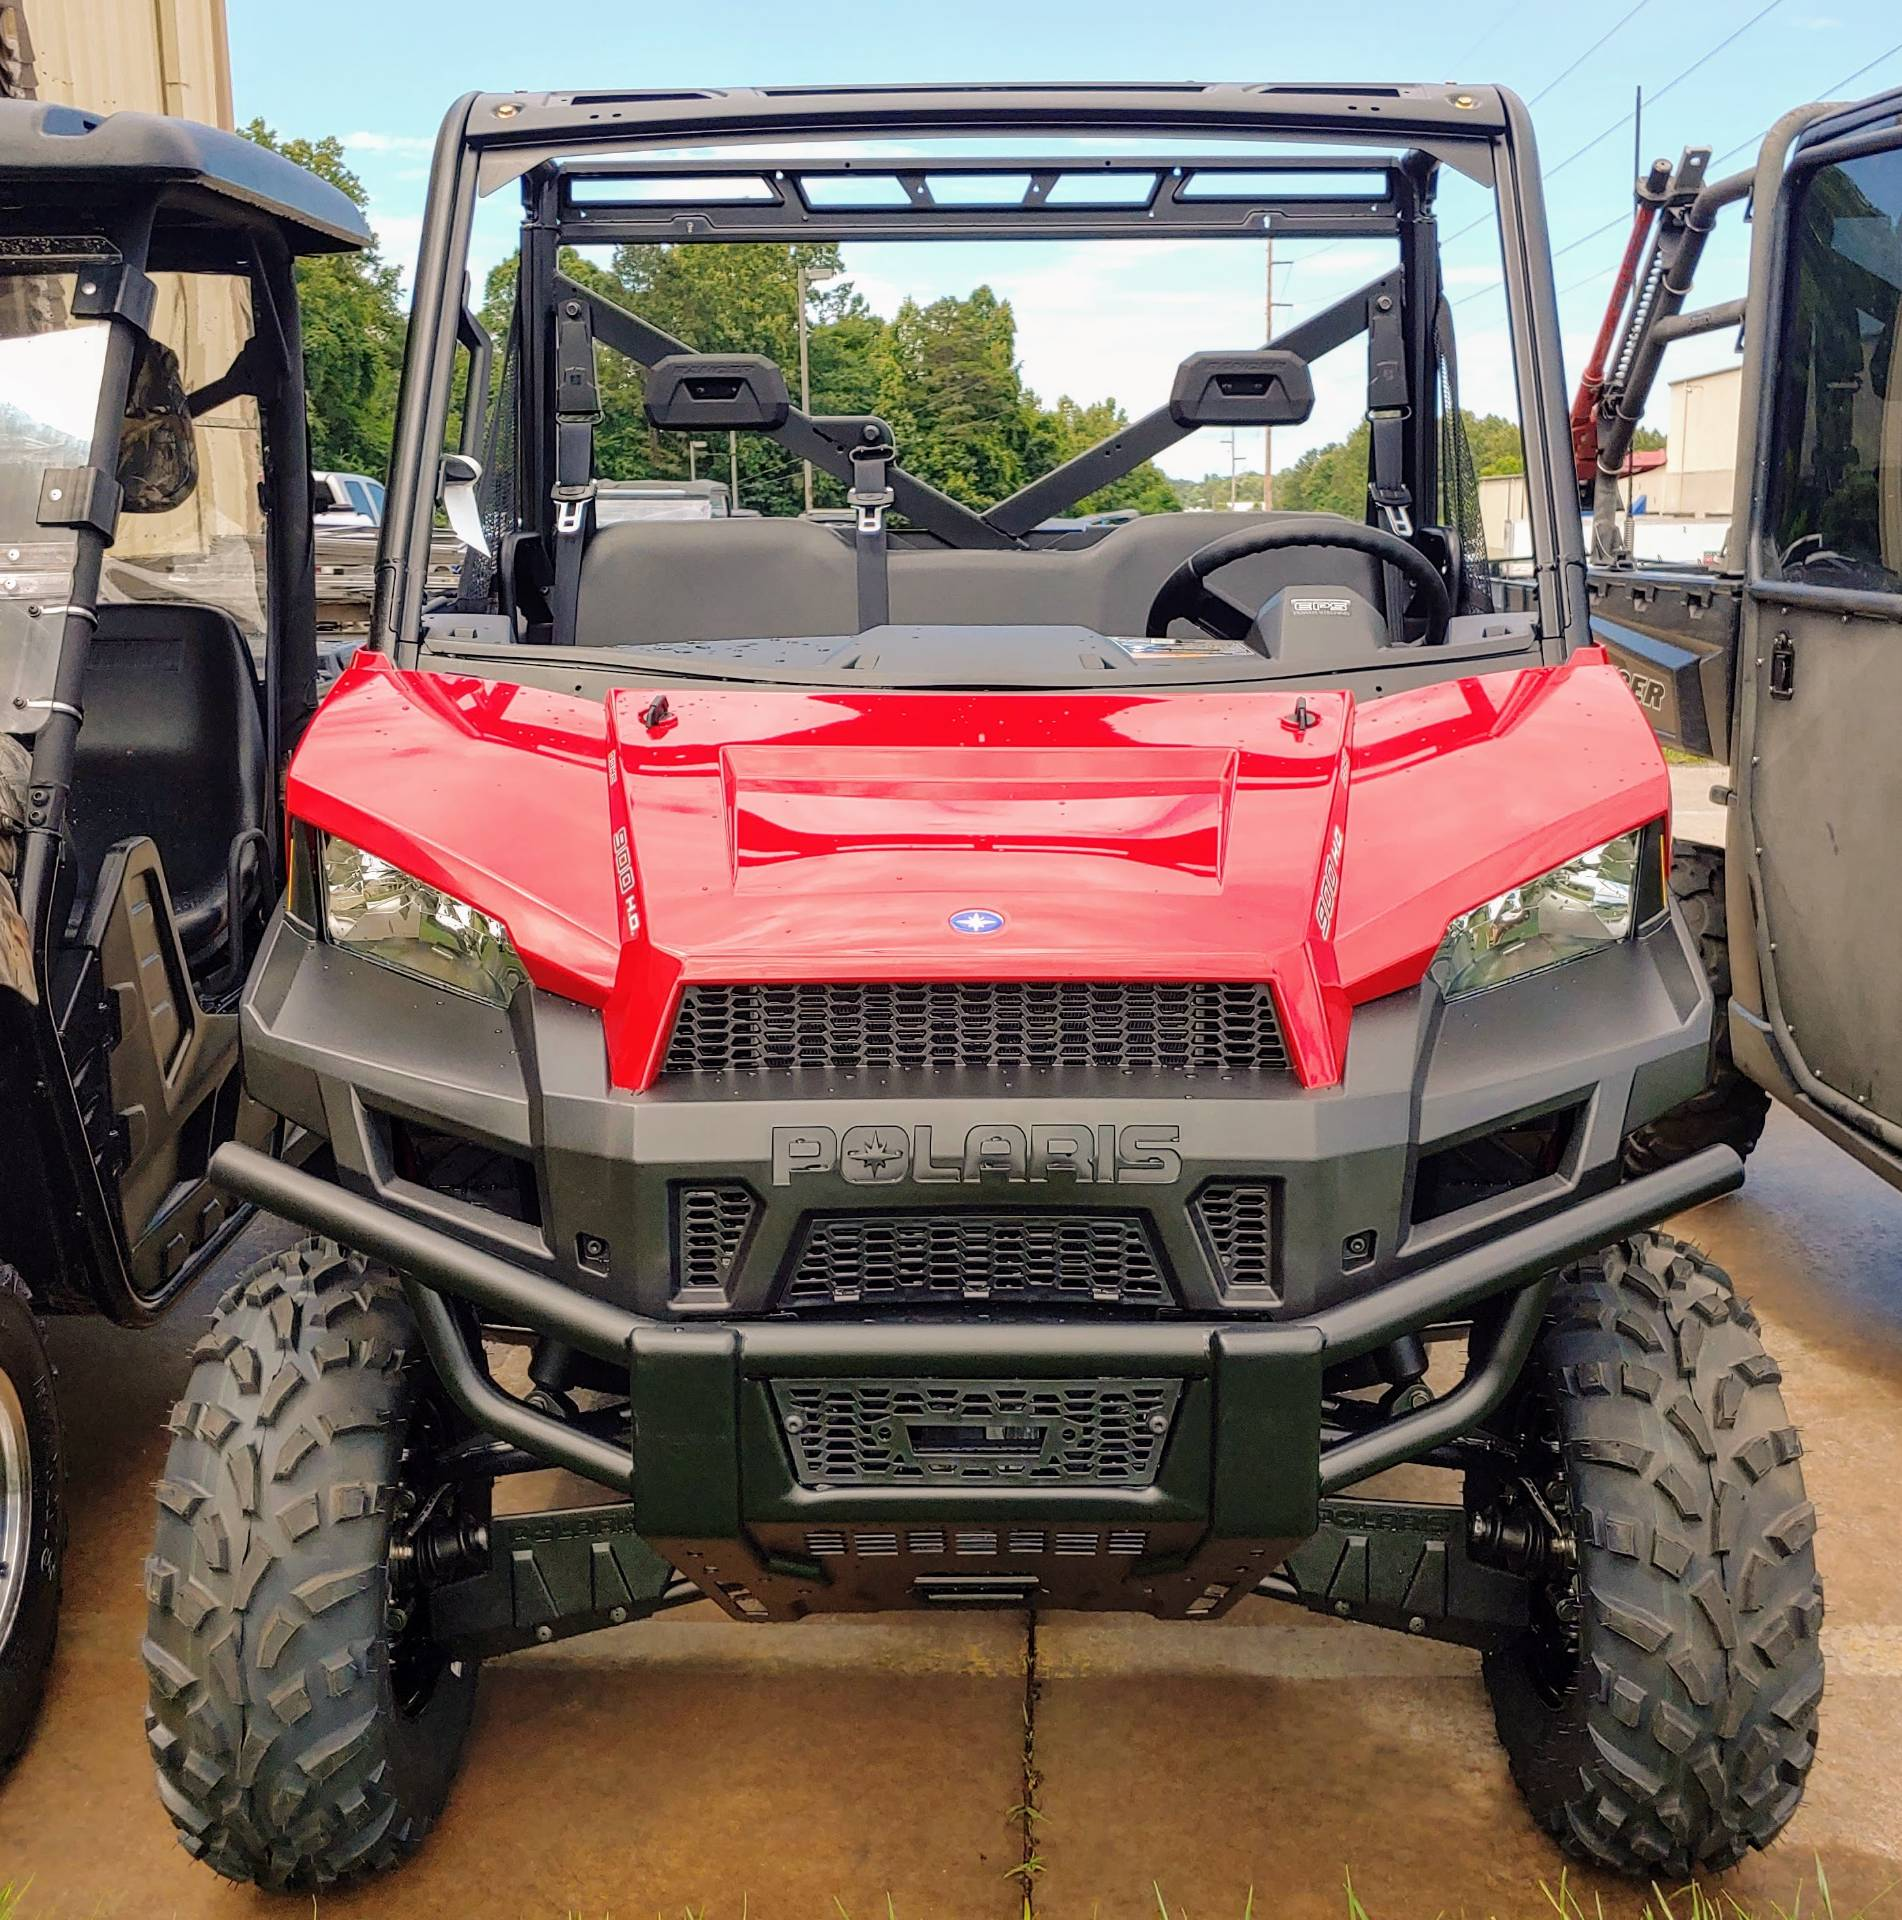 2019 Polaris Ranger XP 900 EPS in Statesville, North Carolina - Photo 3